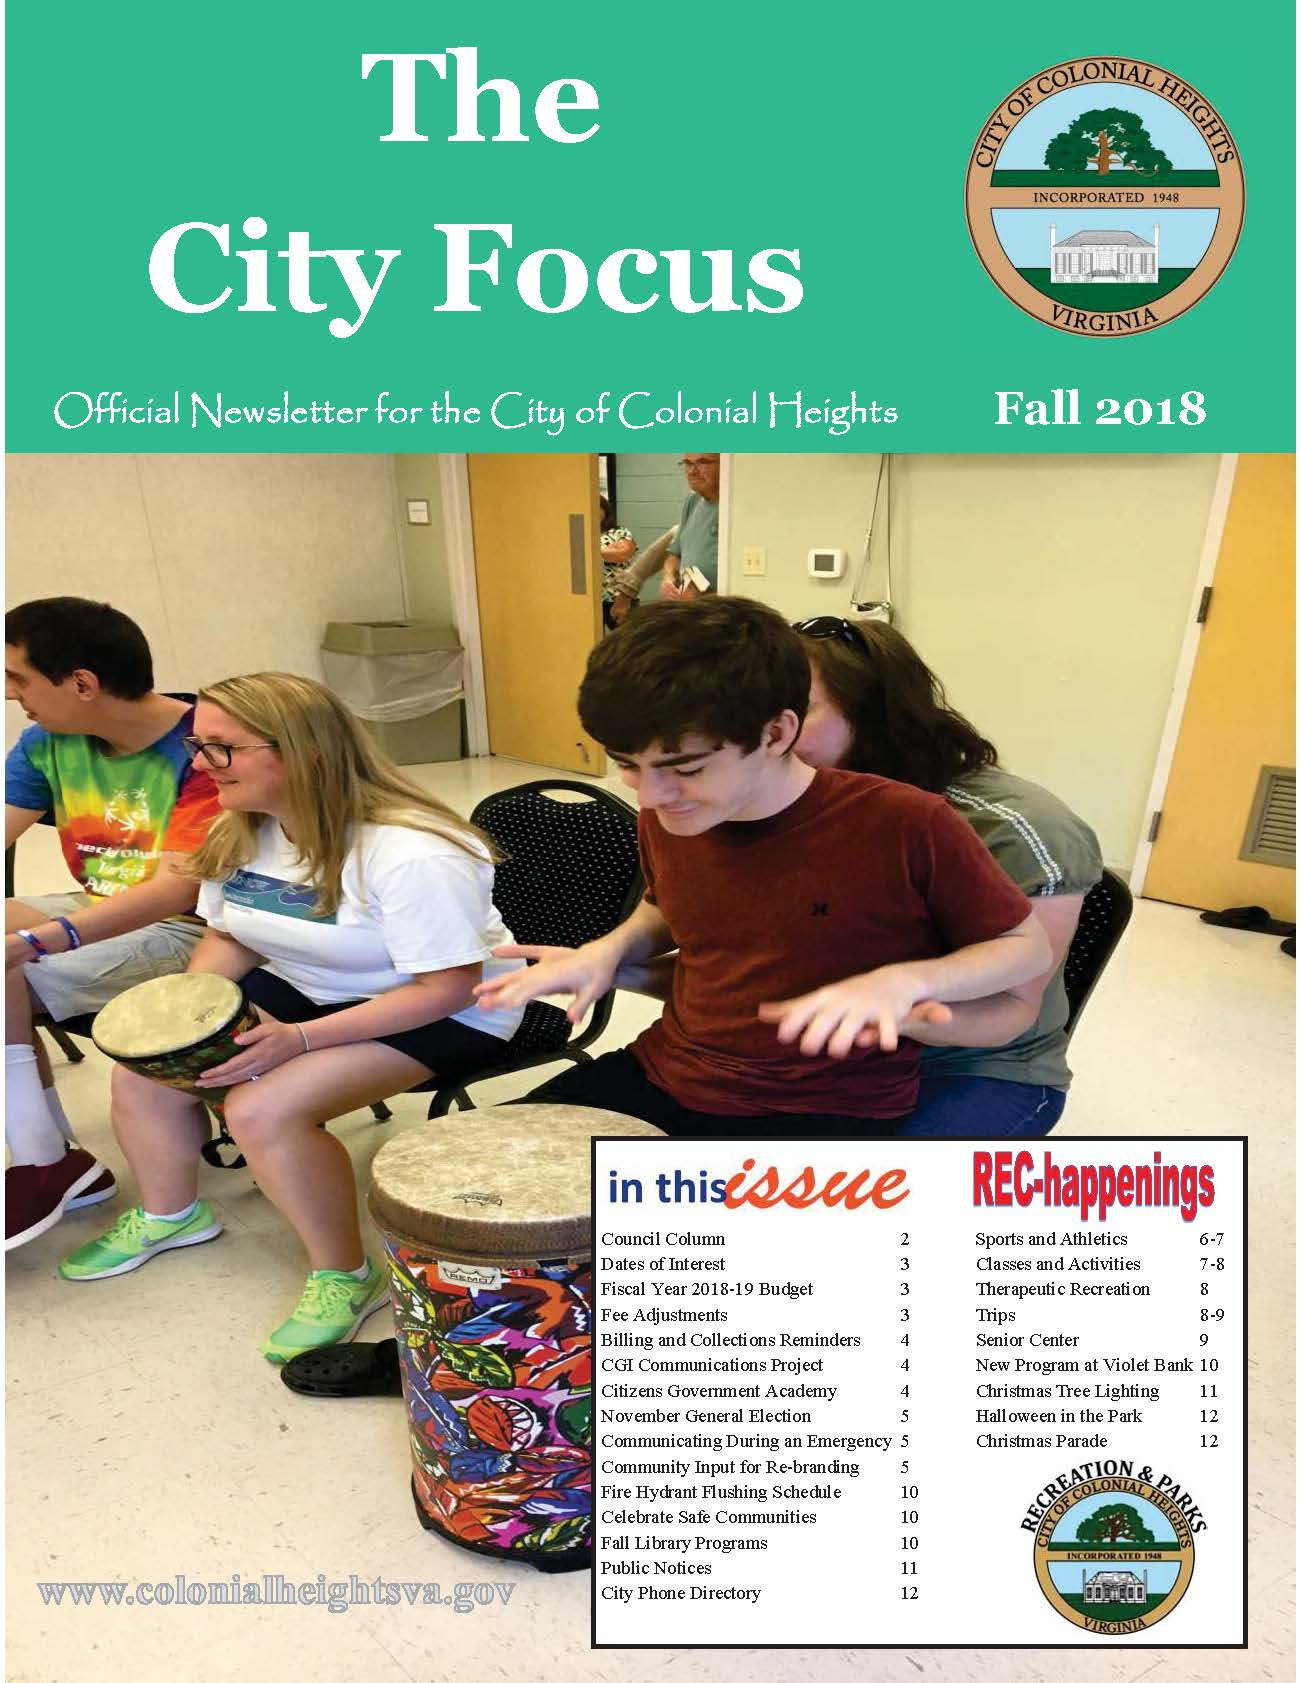 City Focus - Fall 2018